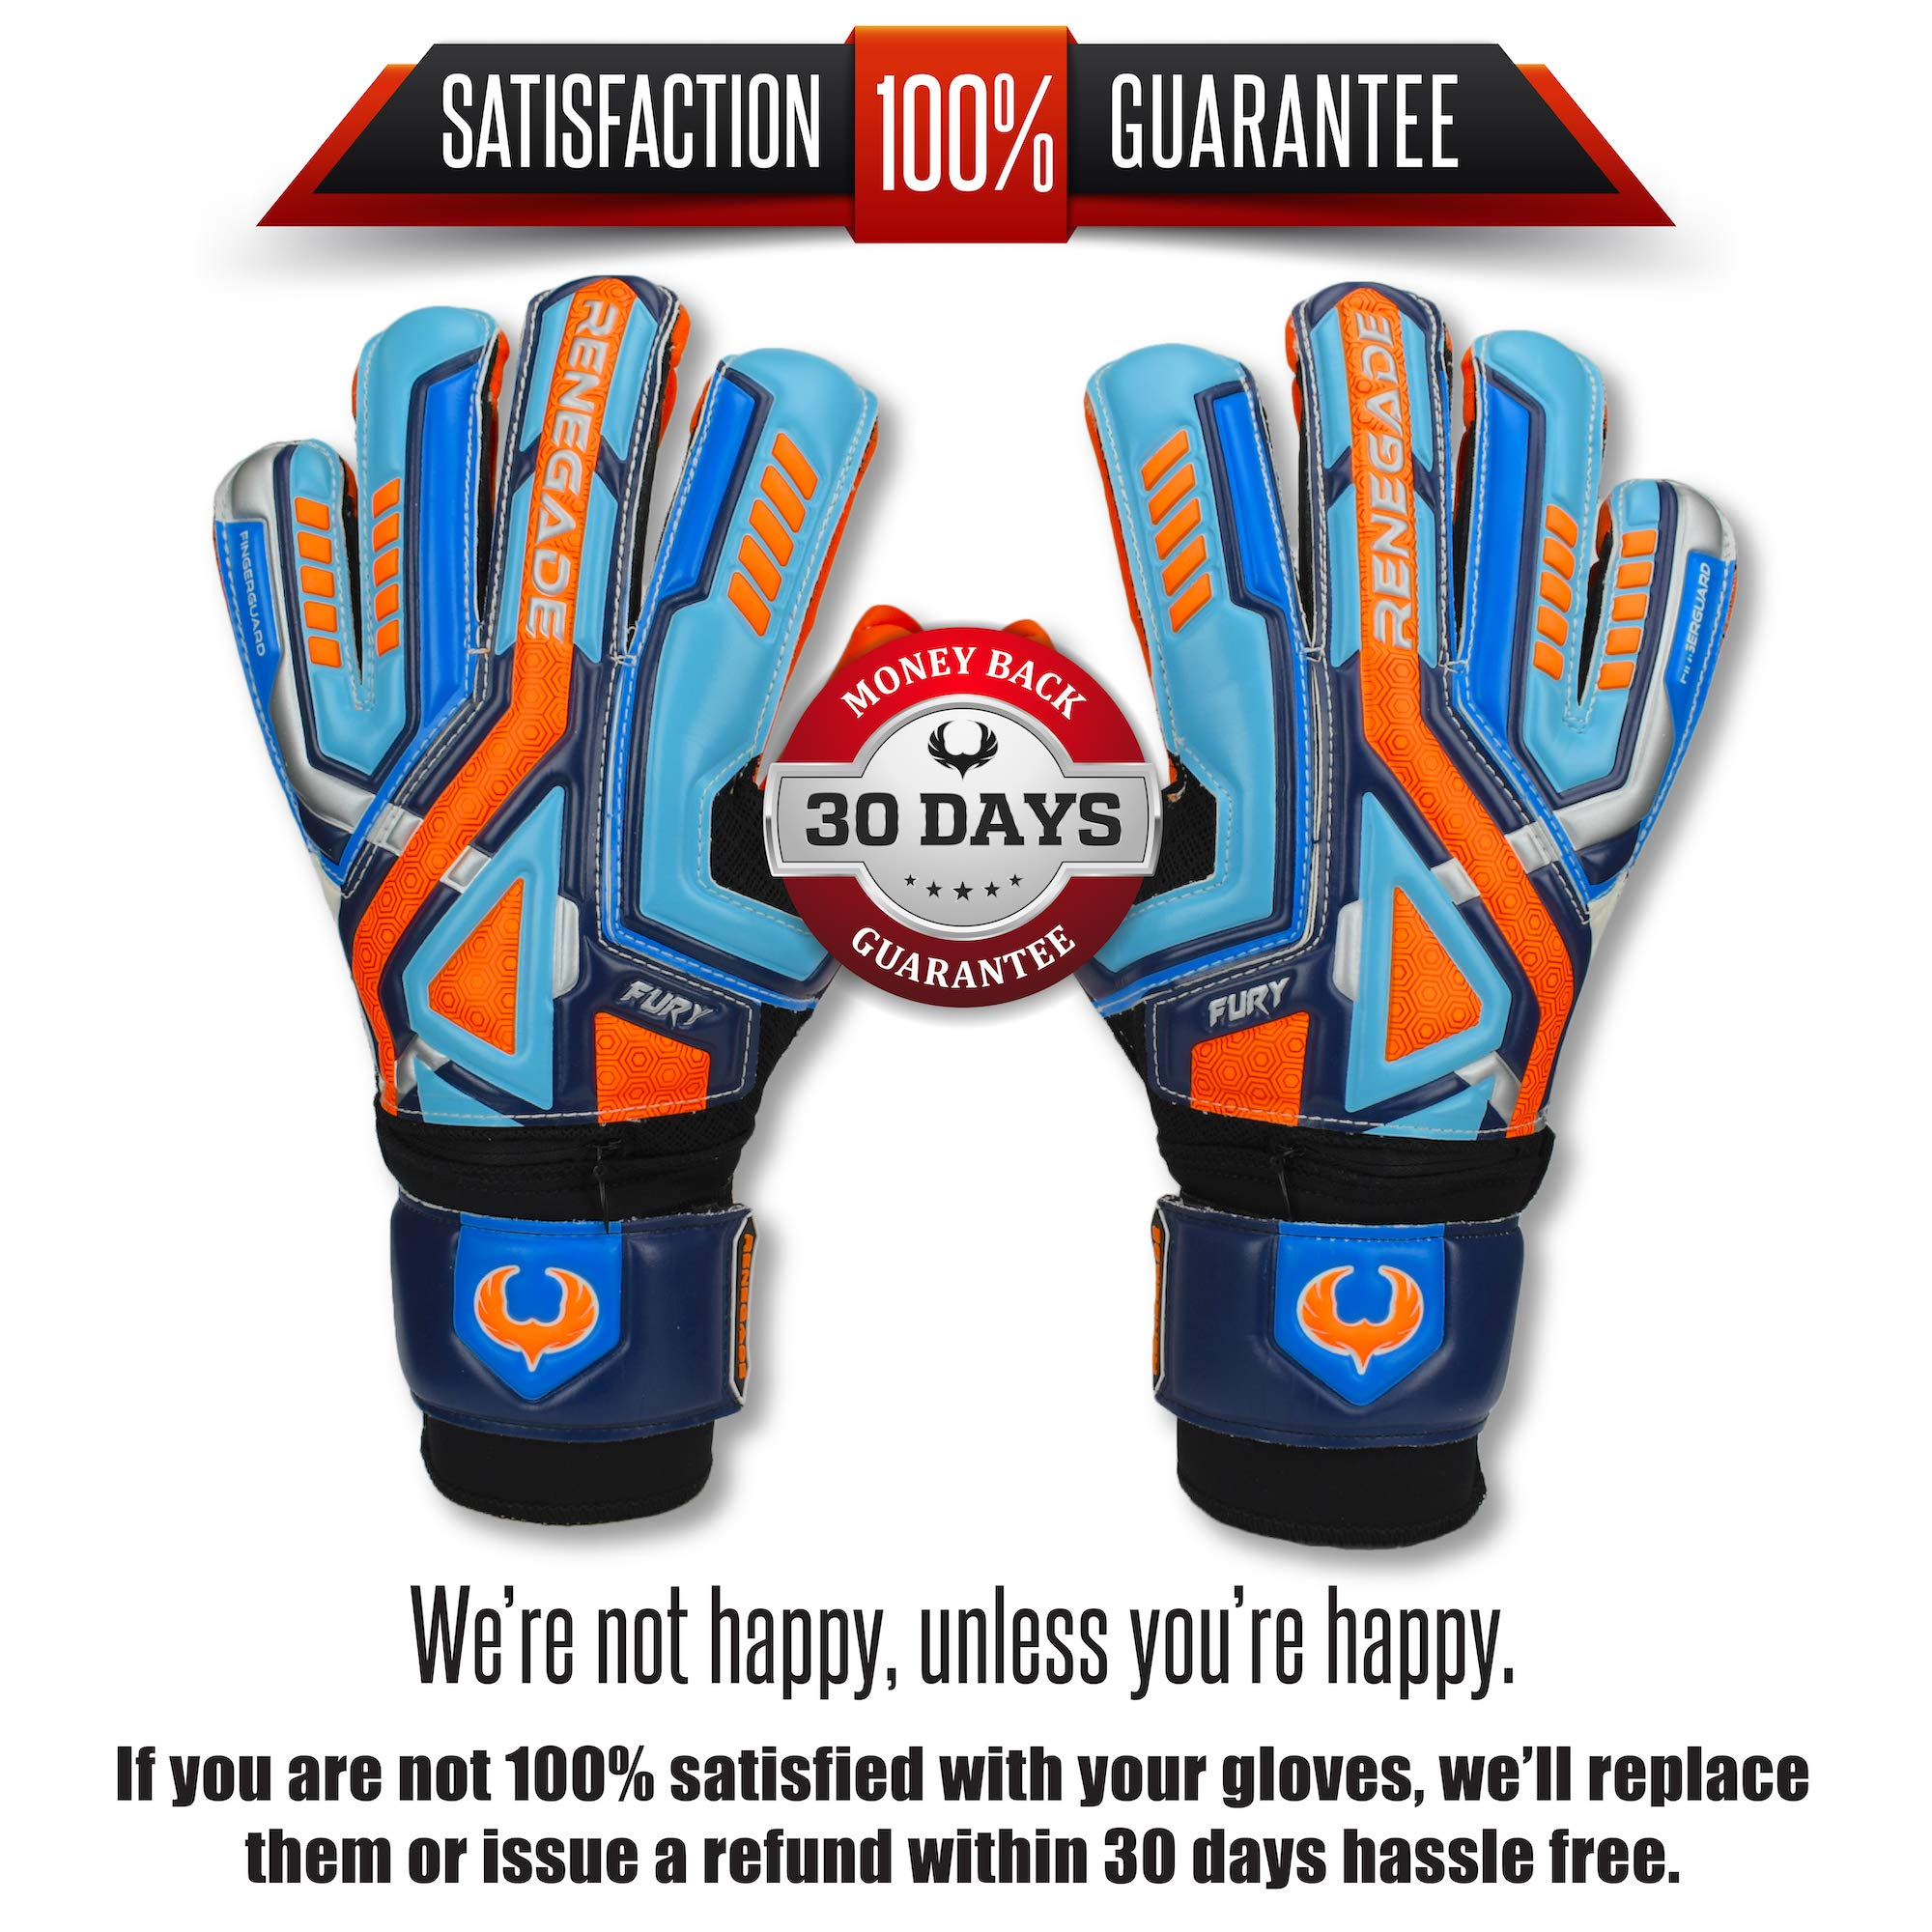 Renegade GK Fury Siege Roll Hybrid Cut Pro Level 4 Youth Goalkeeper Gloves with Pro-Tek Fingersaves - Kids Soccer Goalie Gloves Youth Size 7 - Boys & Girls Goalie Gloves Soccer - Blue, Orange, Black by Renegade GK (Image #2)